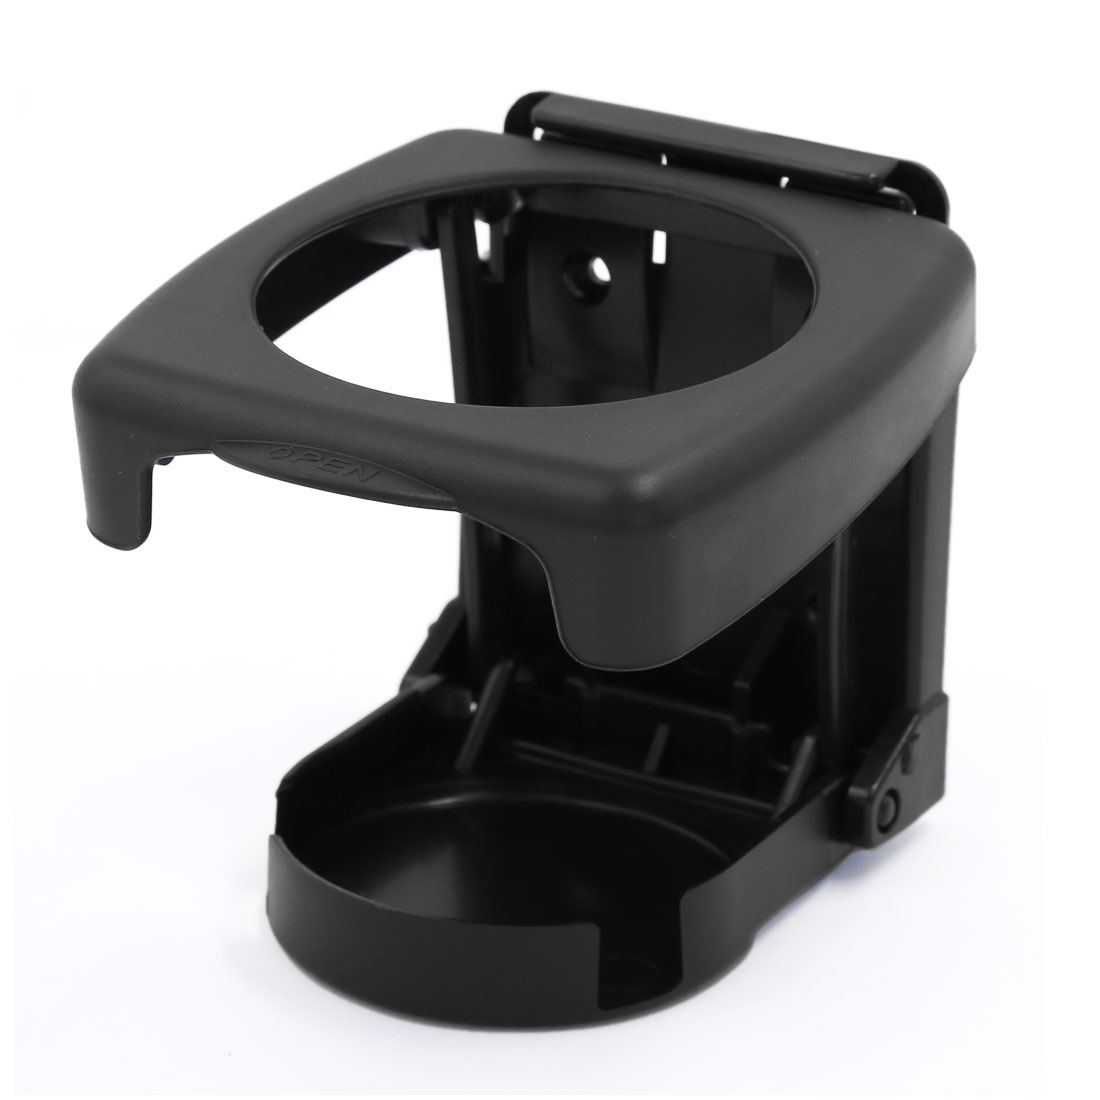 9.5cm Height Plastic Car Air Vent Outlet Drink Holder Bottle Bracket Stand Black